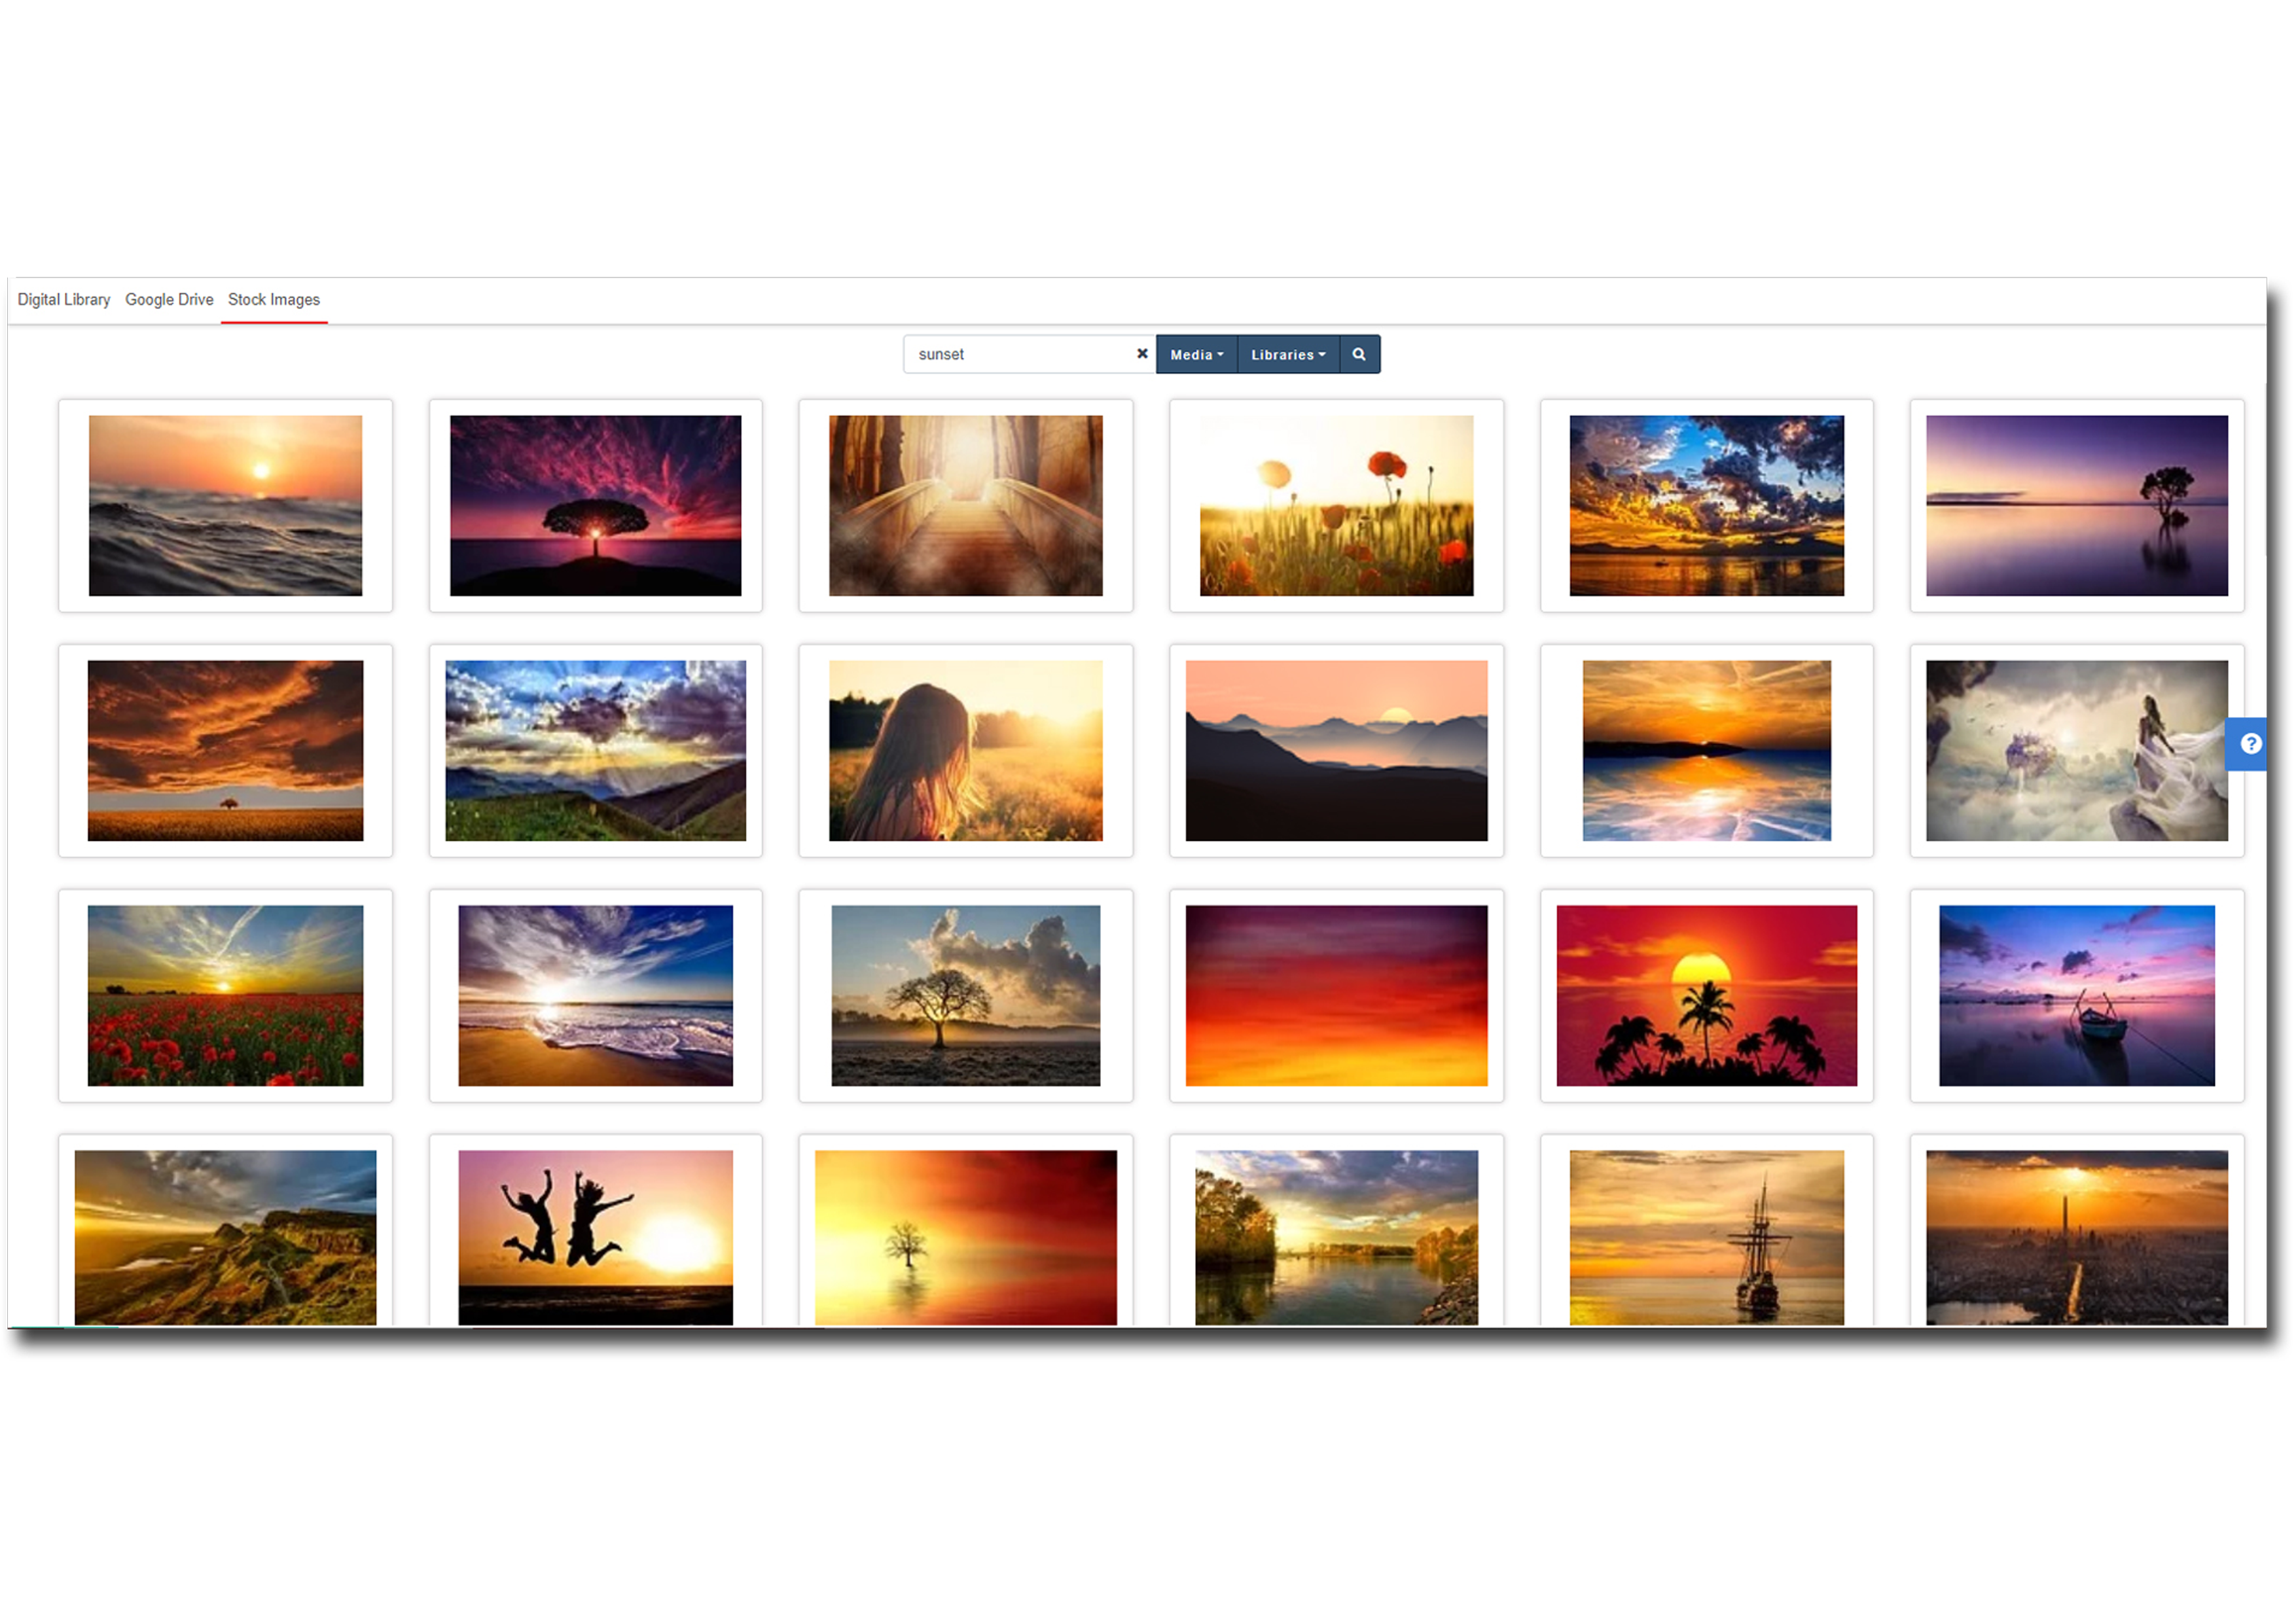 Add images to your post from a range of hundreds of thousands of free-to-use stock images from the stock image library.